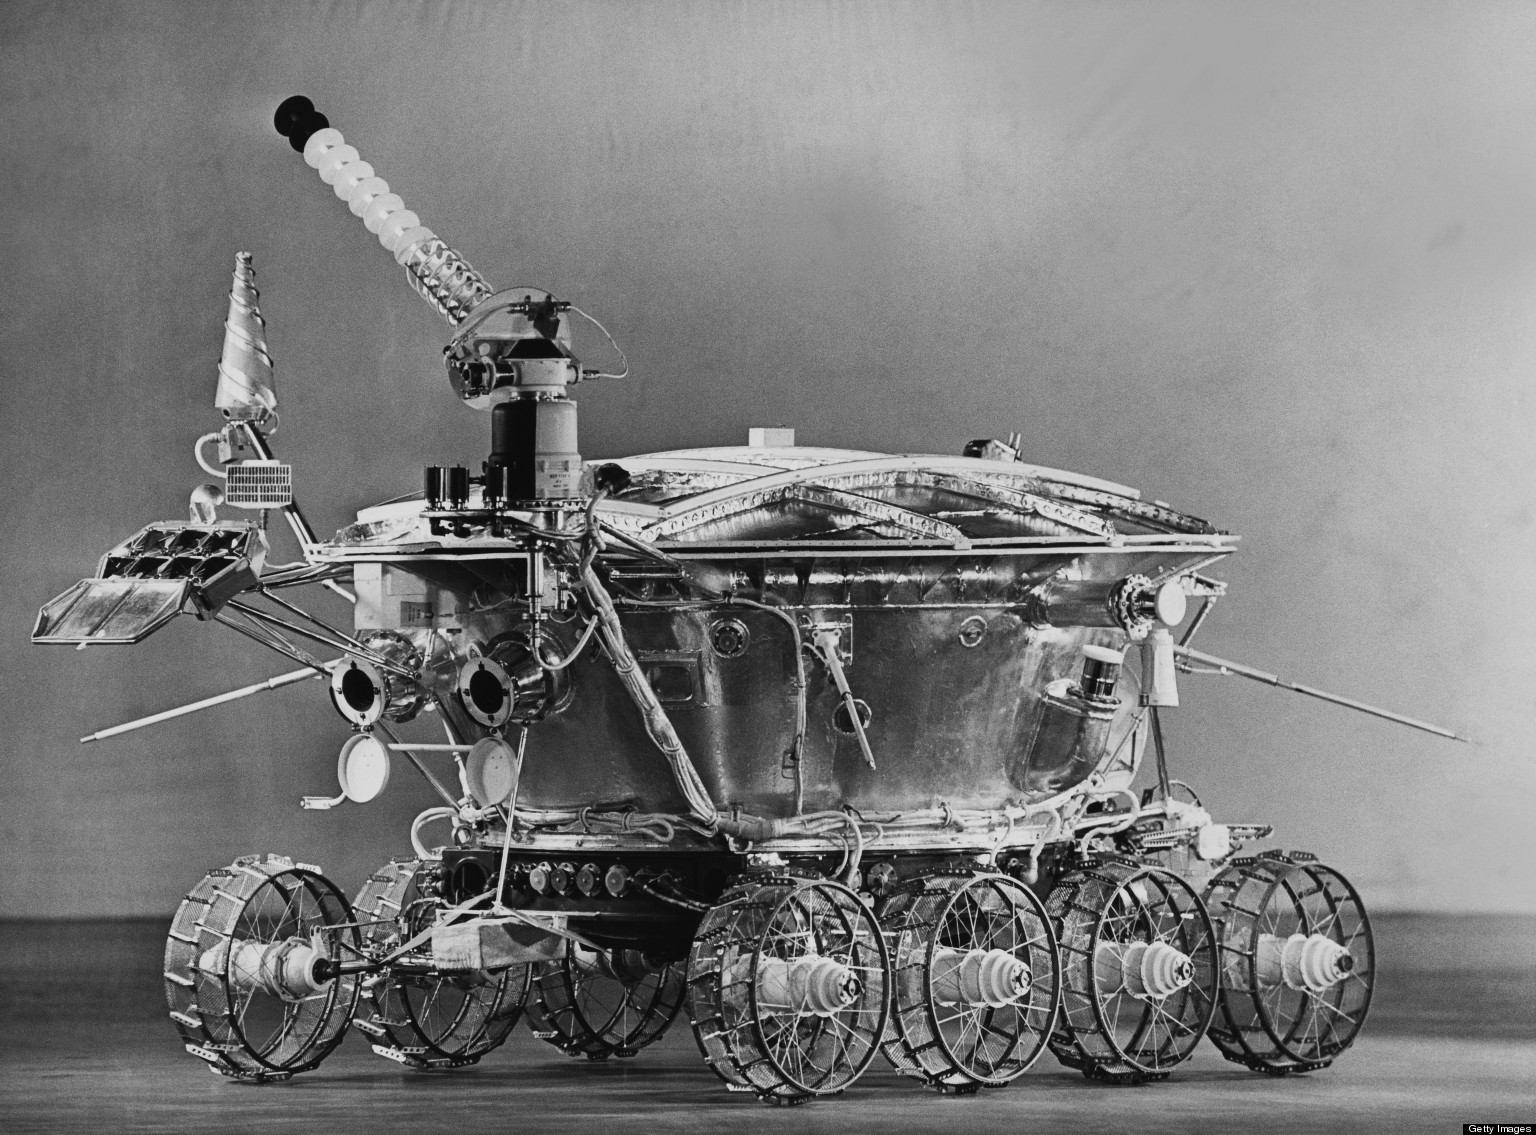 A russian object lost in the moon 50 years ago